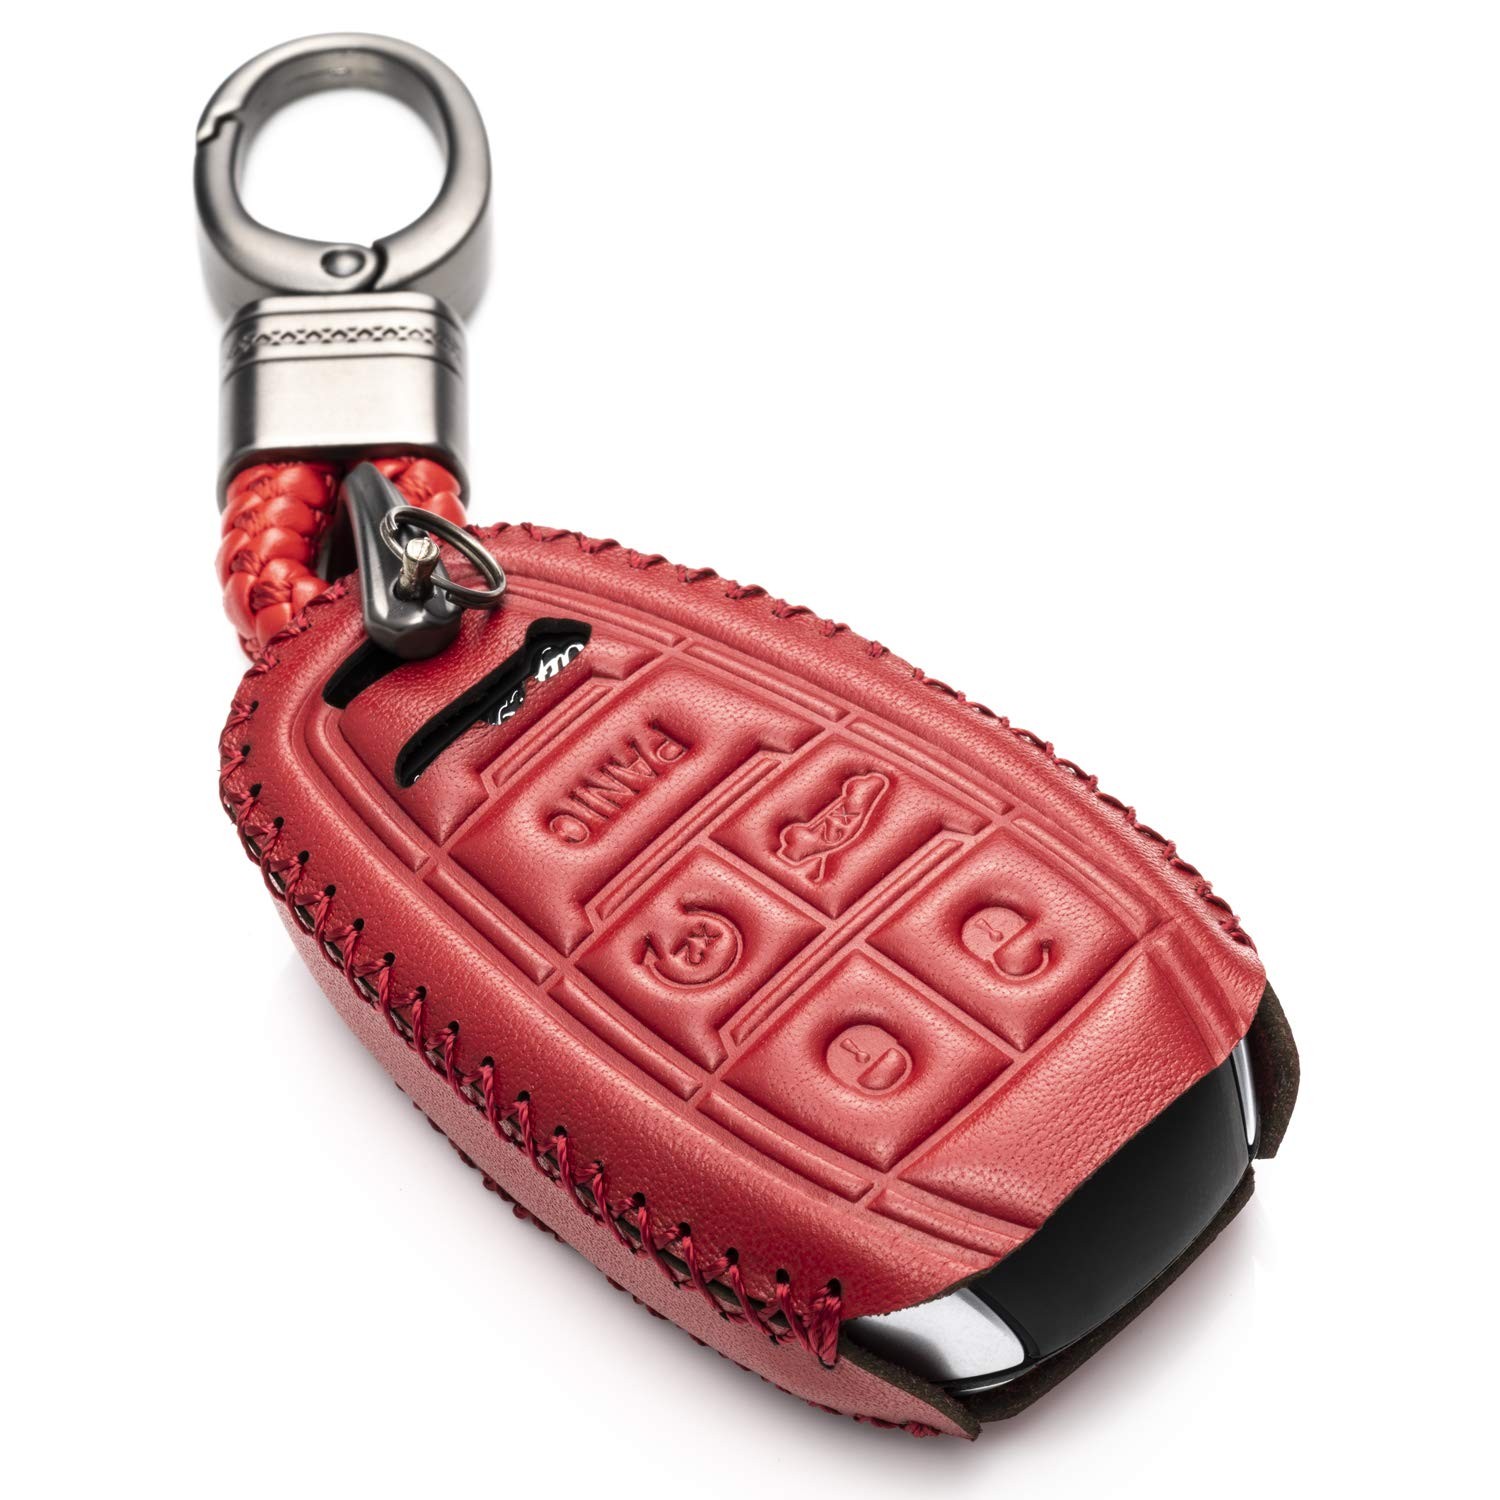 Vitodeco Genuine Leather Smart Key Fob Case Cover Protector with Leather Key Chain for 2017-2019 Alfa Romeo Giulia, Stelvio, 4C Spider (5-Button, Red)